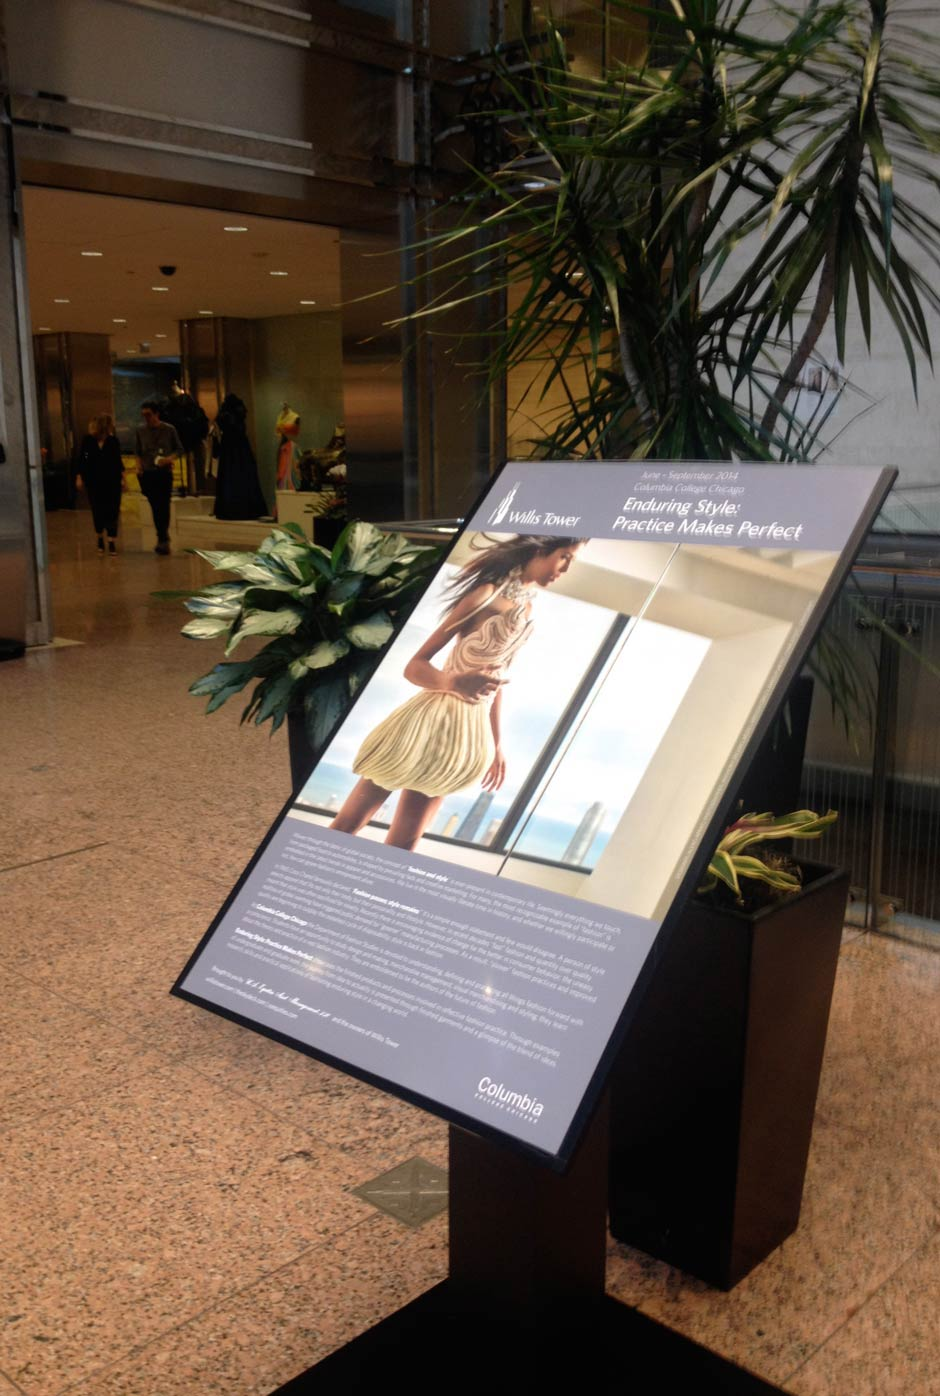 Columbia College Chicago's Enduring Style: Practice Makes Perfect Fashion Exhibition at Willis Tower